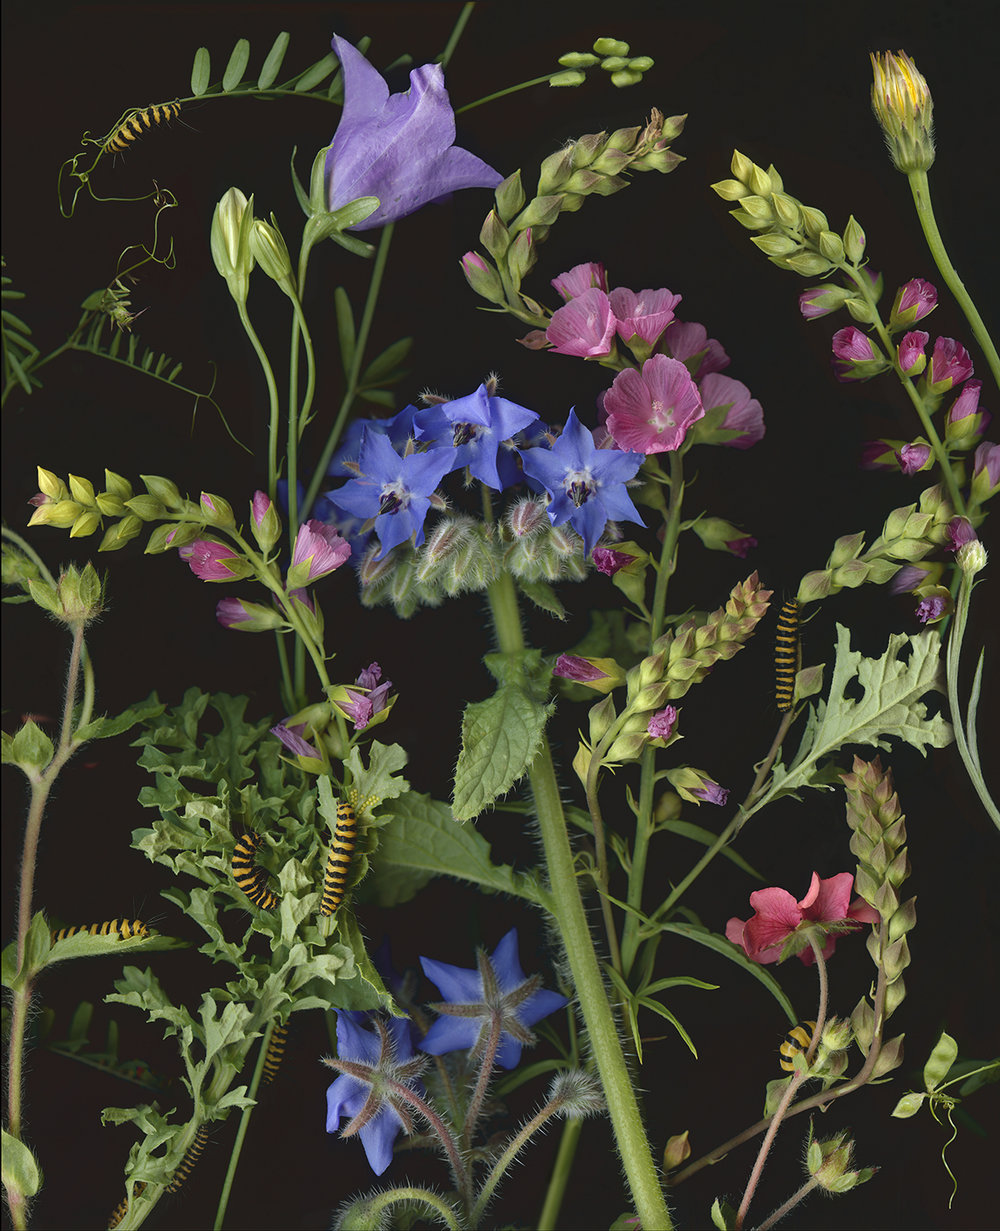 Caterpillars, Tansy Ragwort and Borage